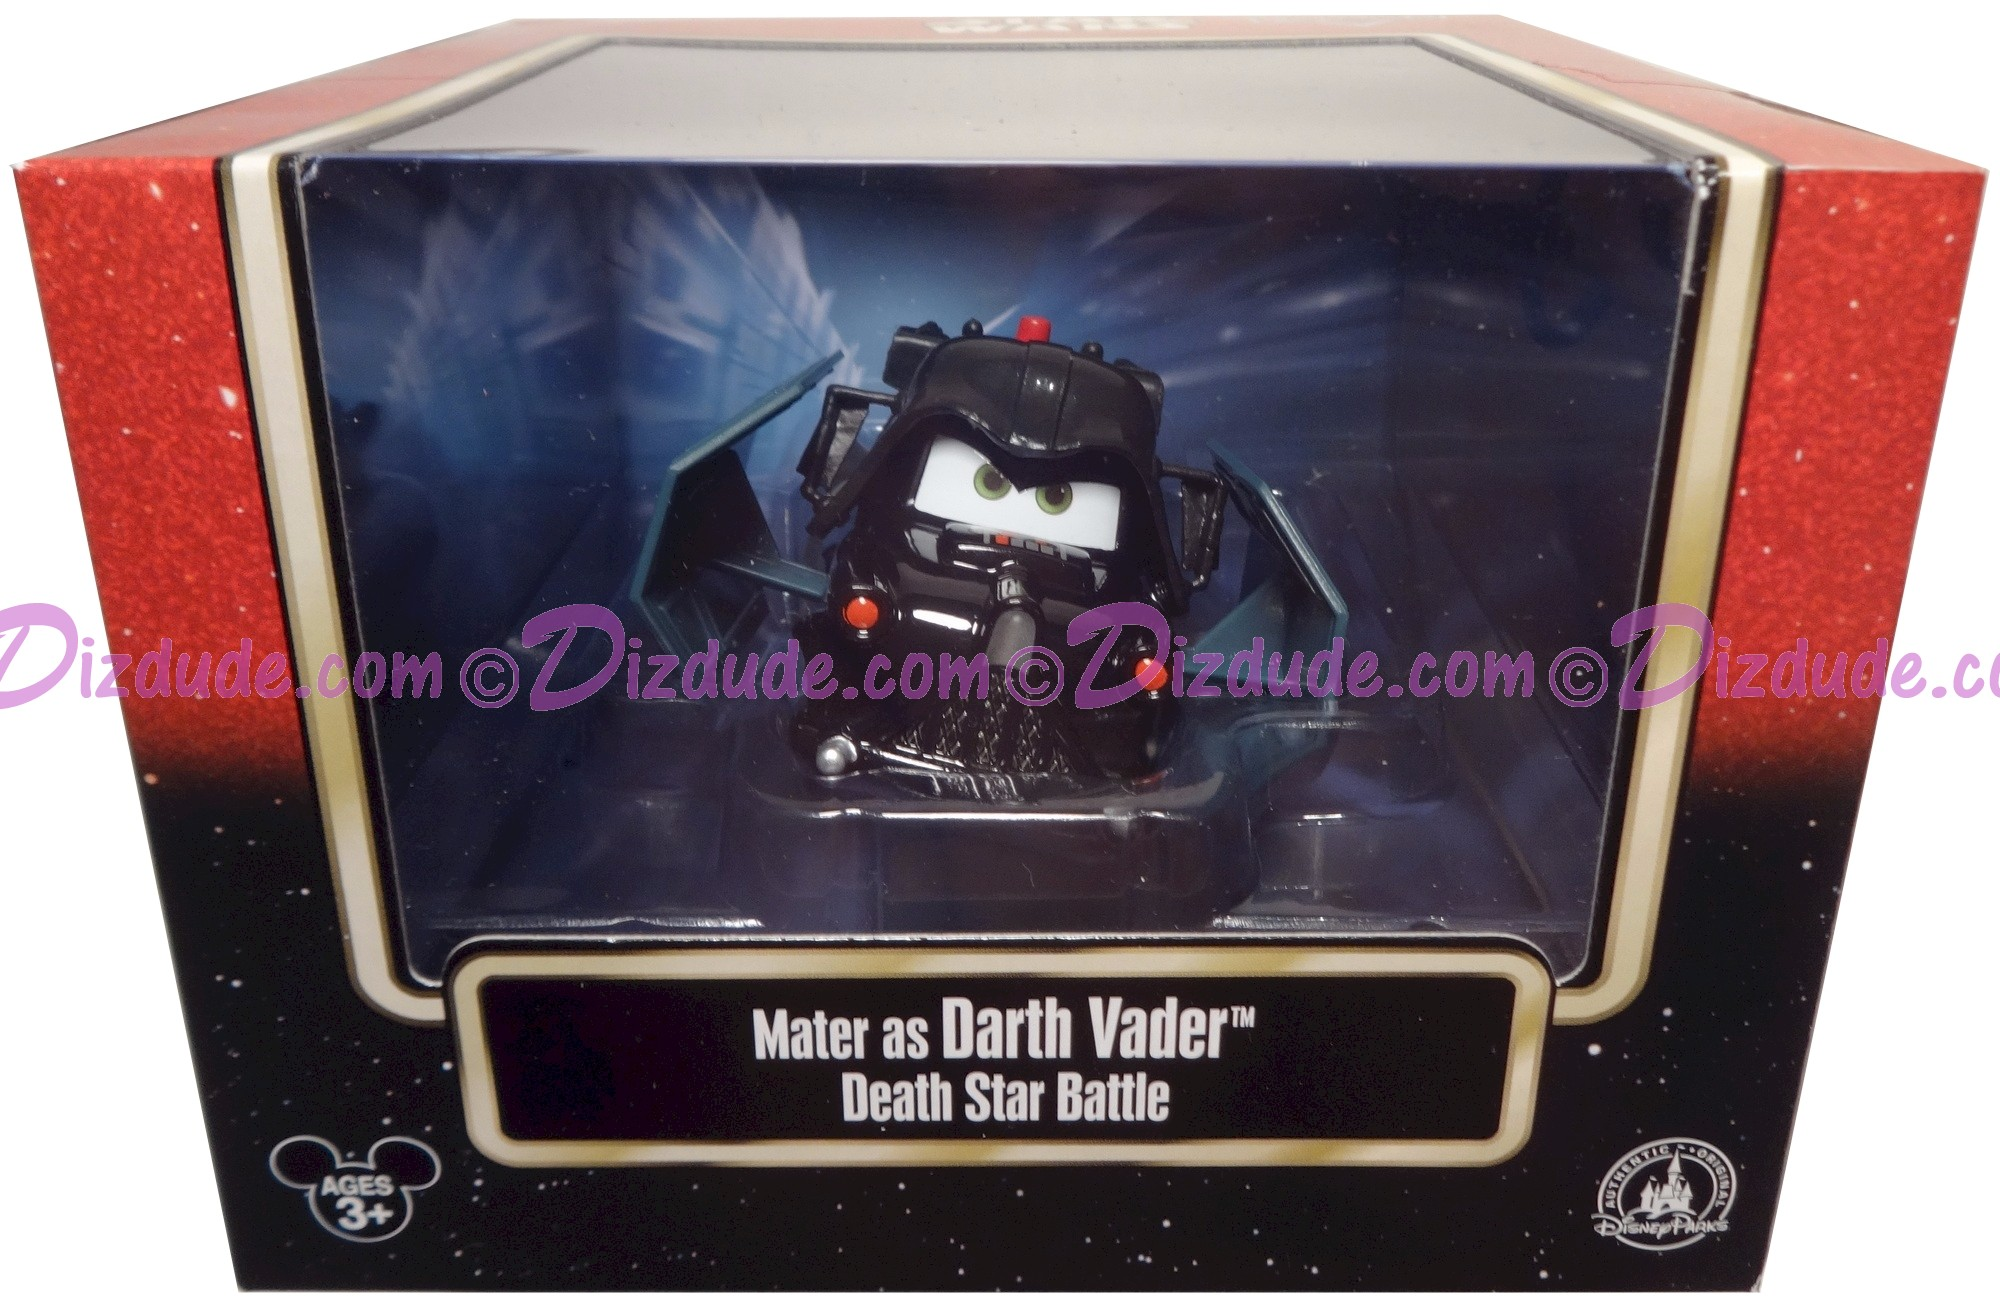 "Disney Pixar ""Cars"" as LucasFilm ""Star Wars""  Mater as Darth Vader in Tie Fighter Deluxe Box- Series 3 ~ Exclusive Star Wars Weekends 2015 © Dizdude.com"